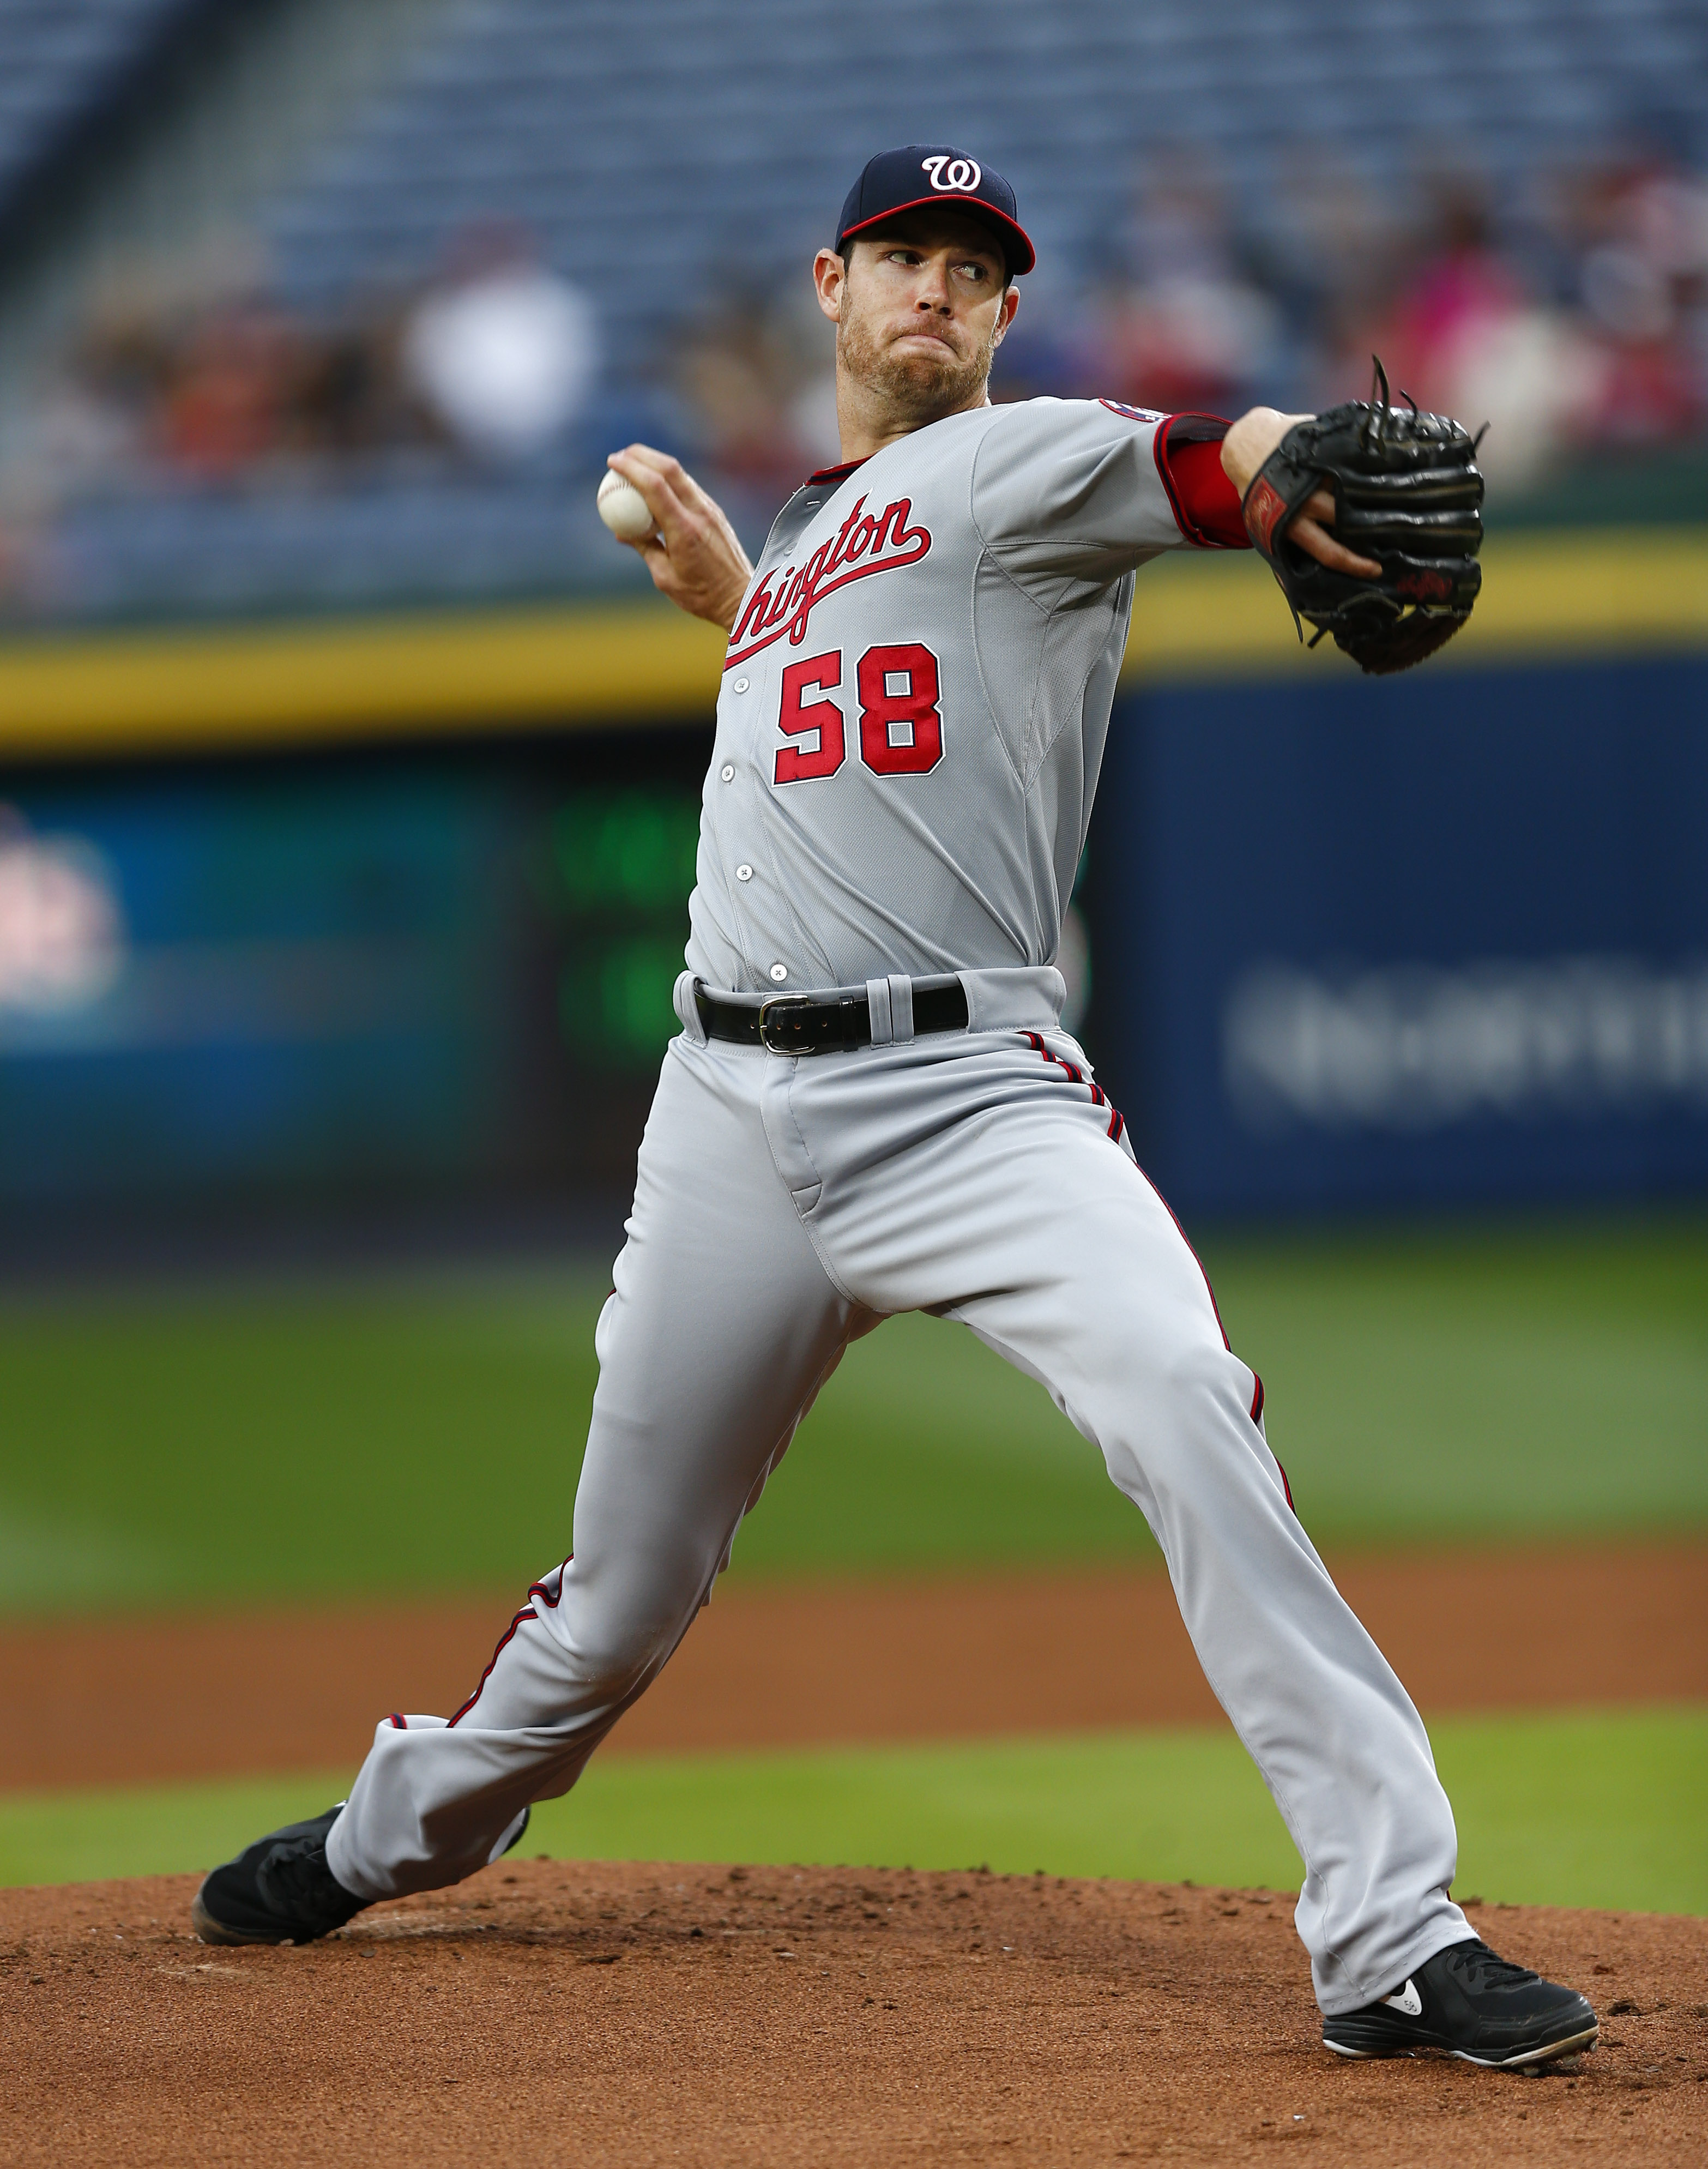 Doug Fister has a good chance to revive his career with the Ast…